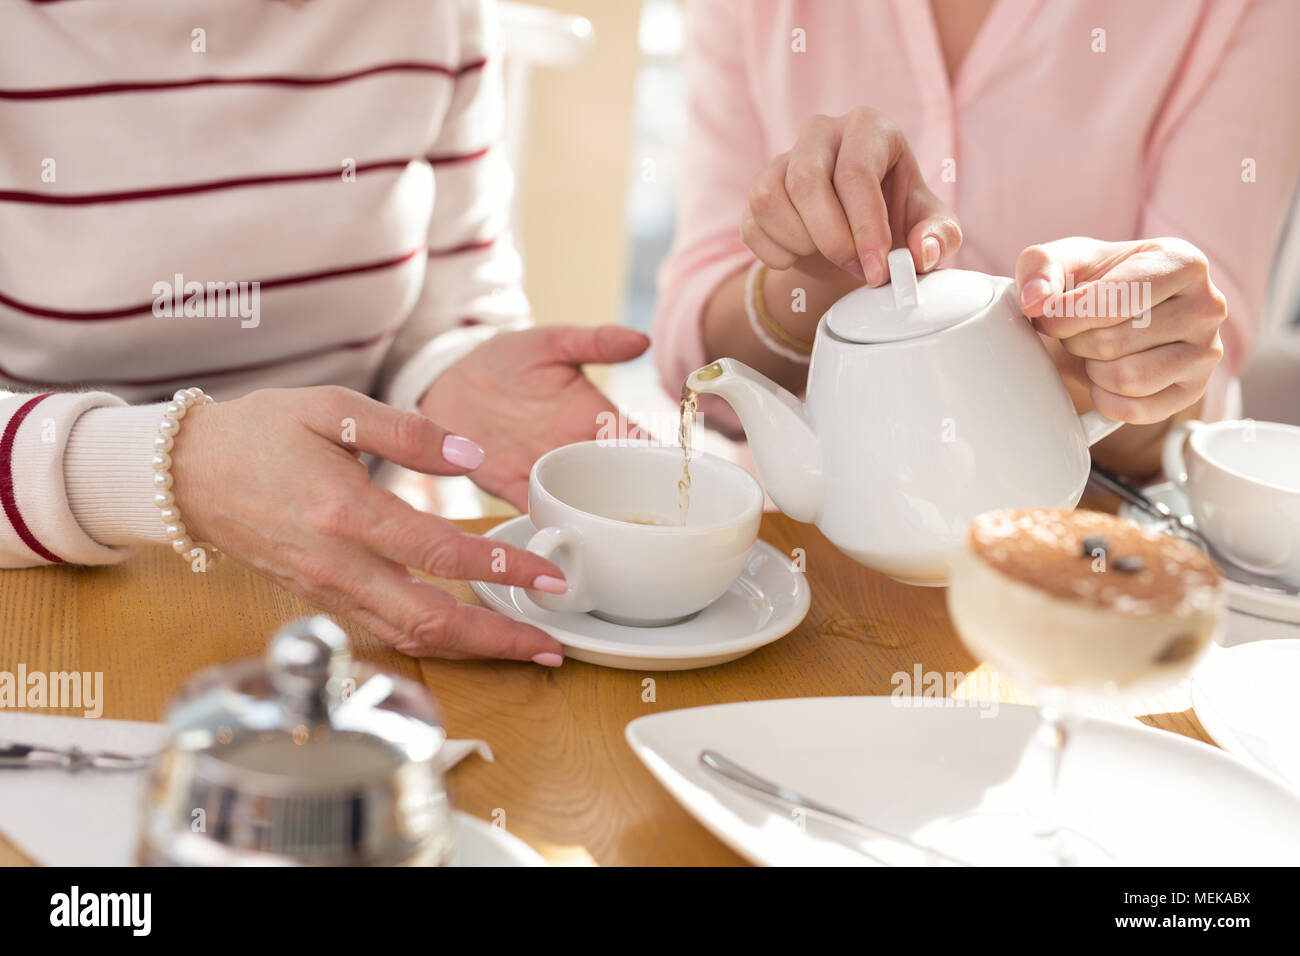 Caring girl having lunch with her granny - Stock Image